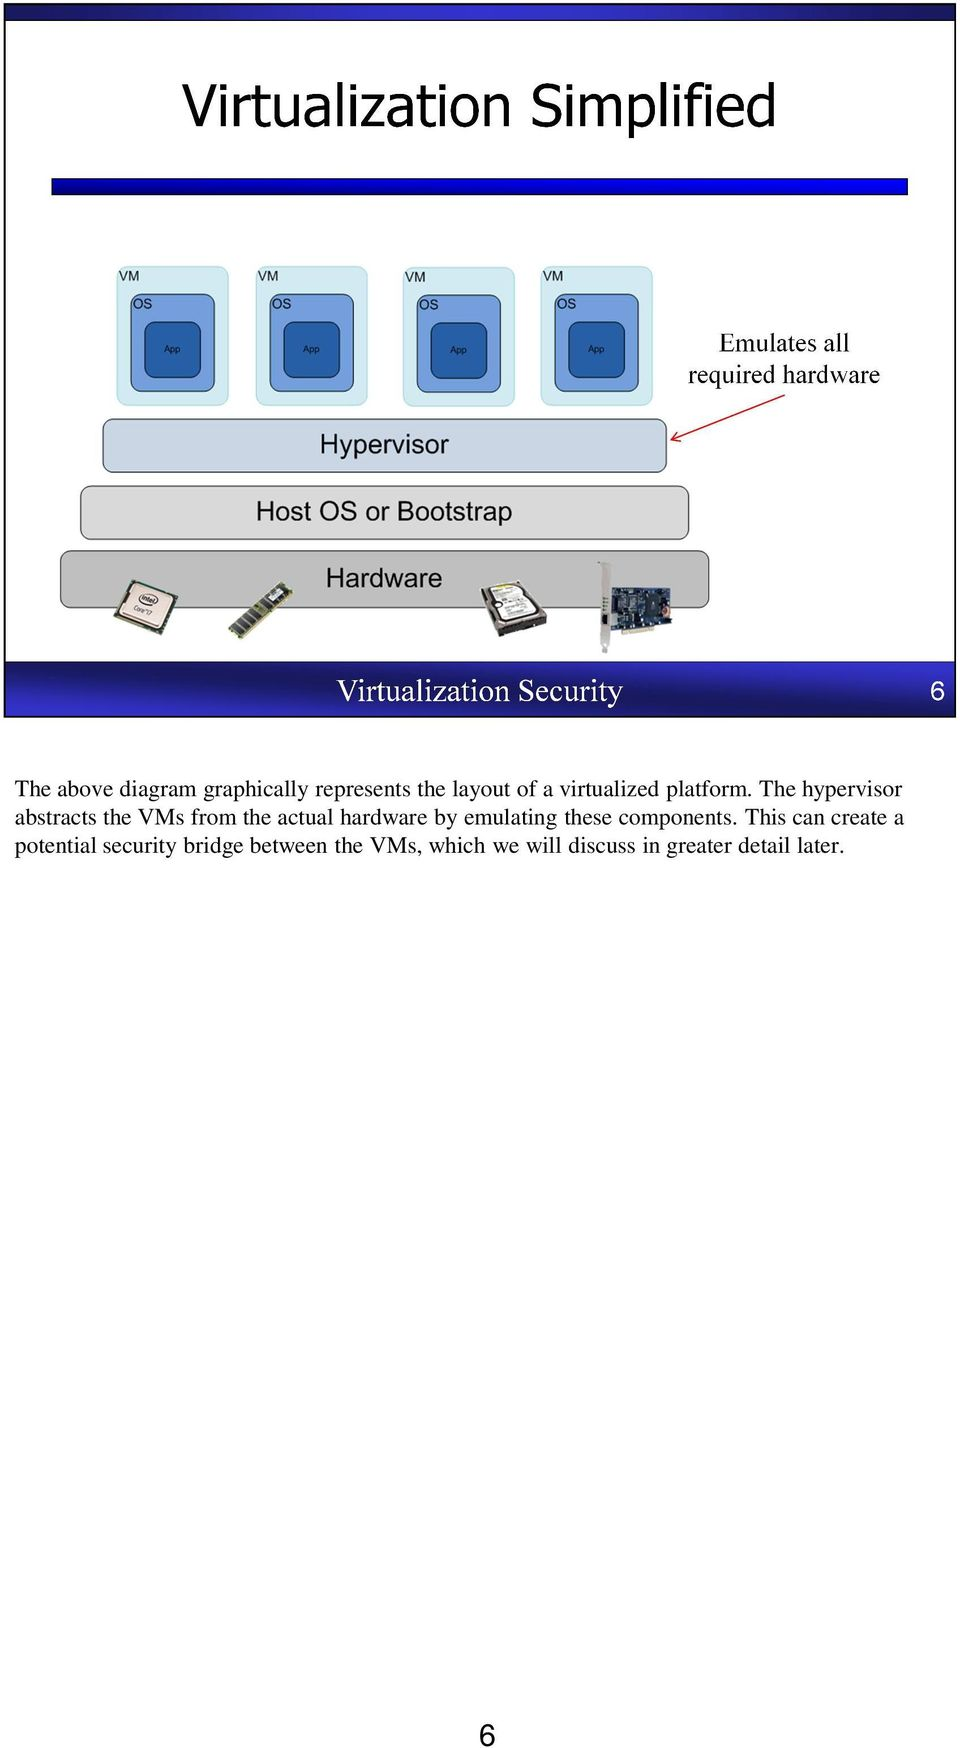 The hypervisor abstracts the VMs from the actual hardware by